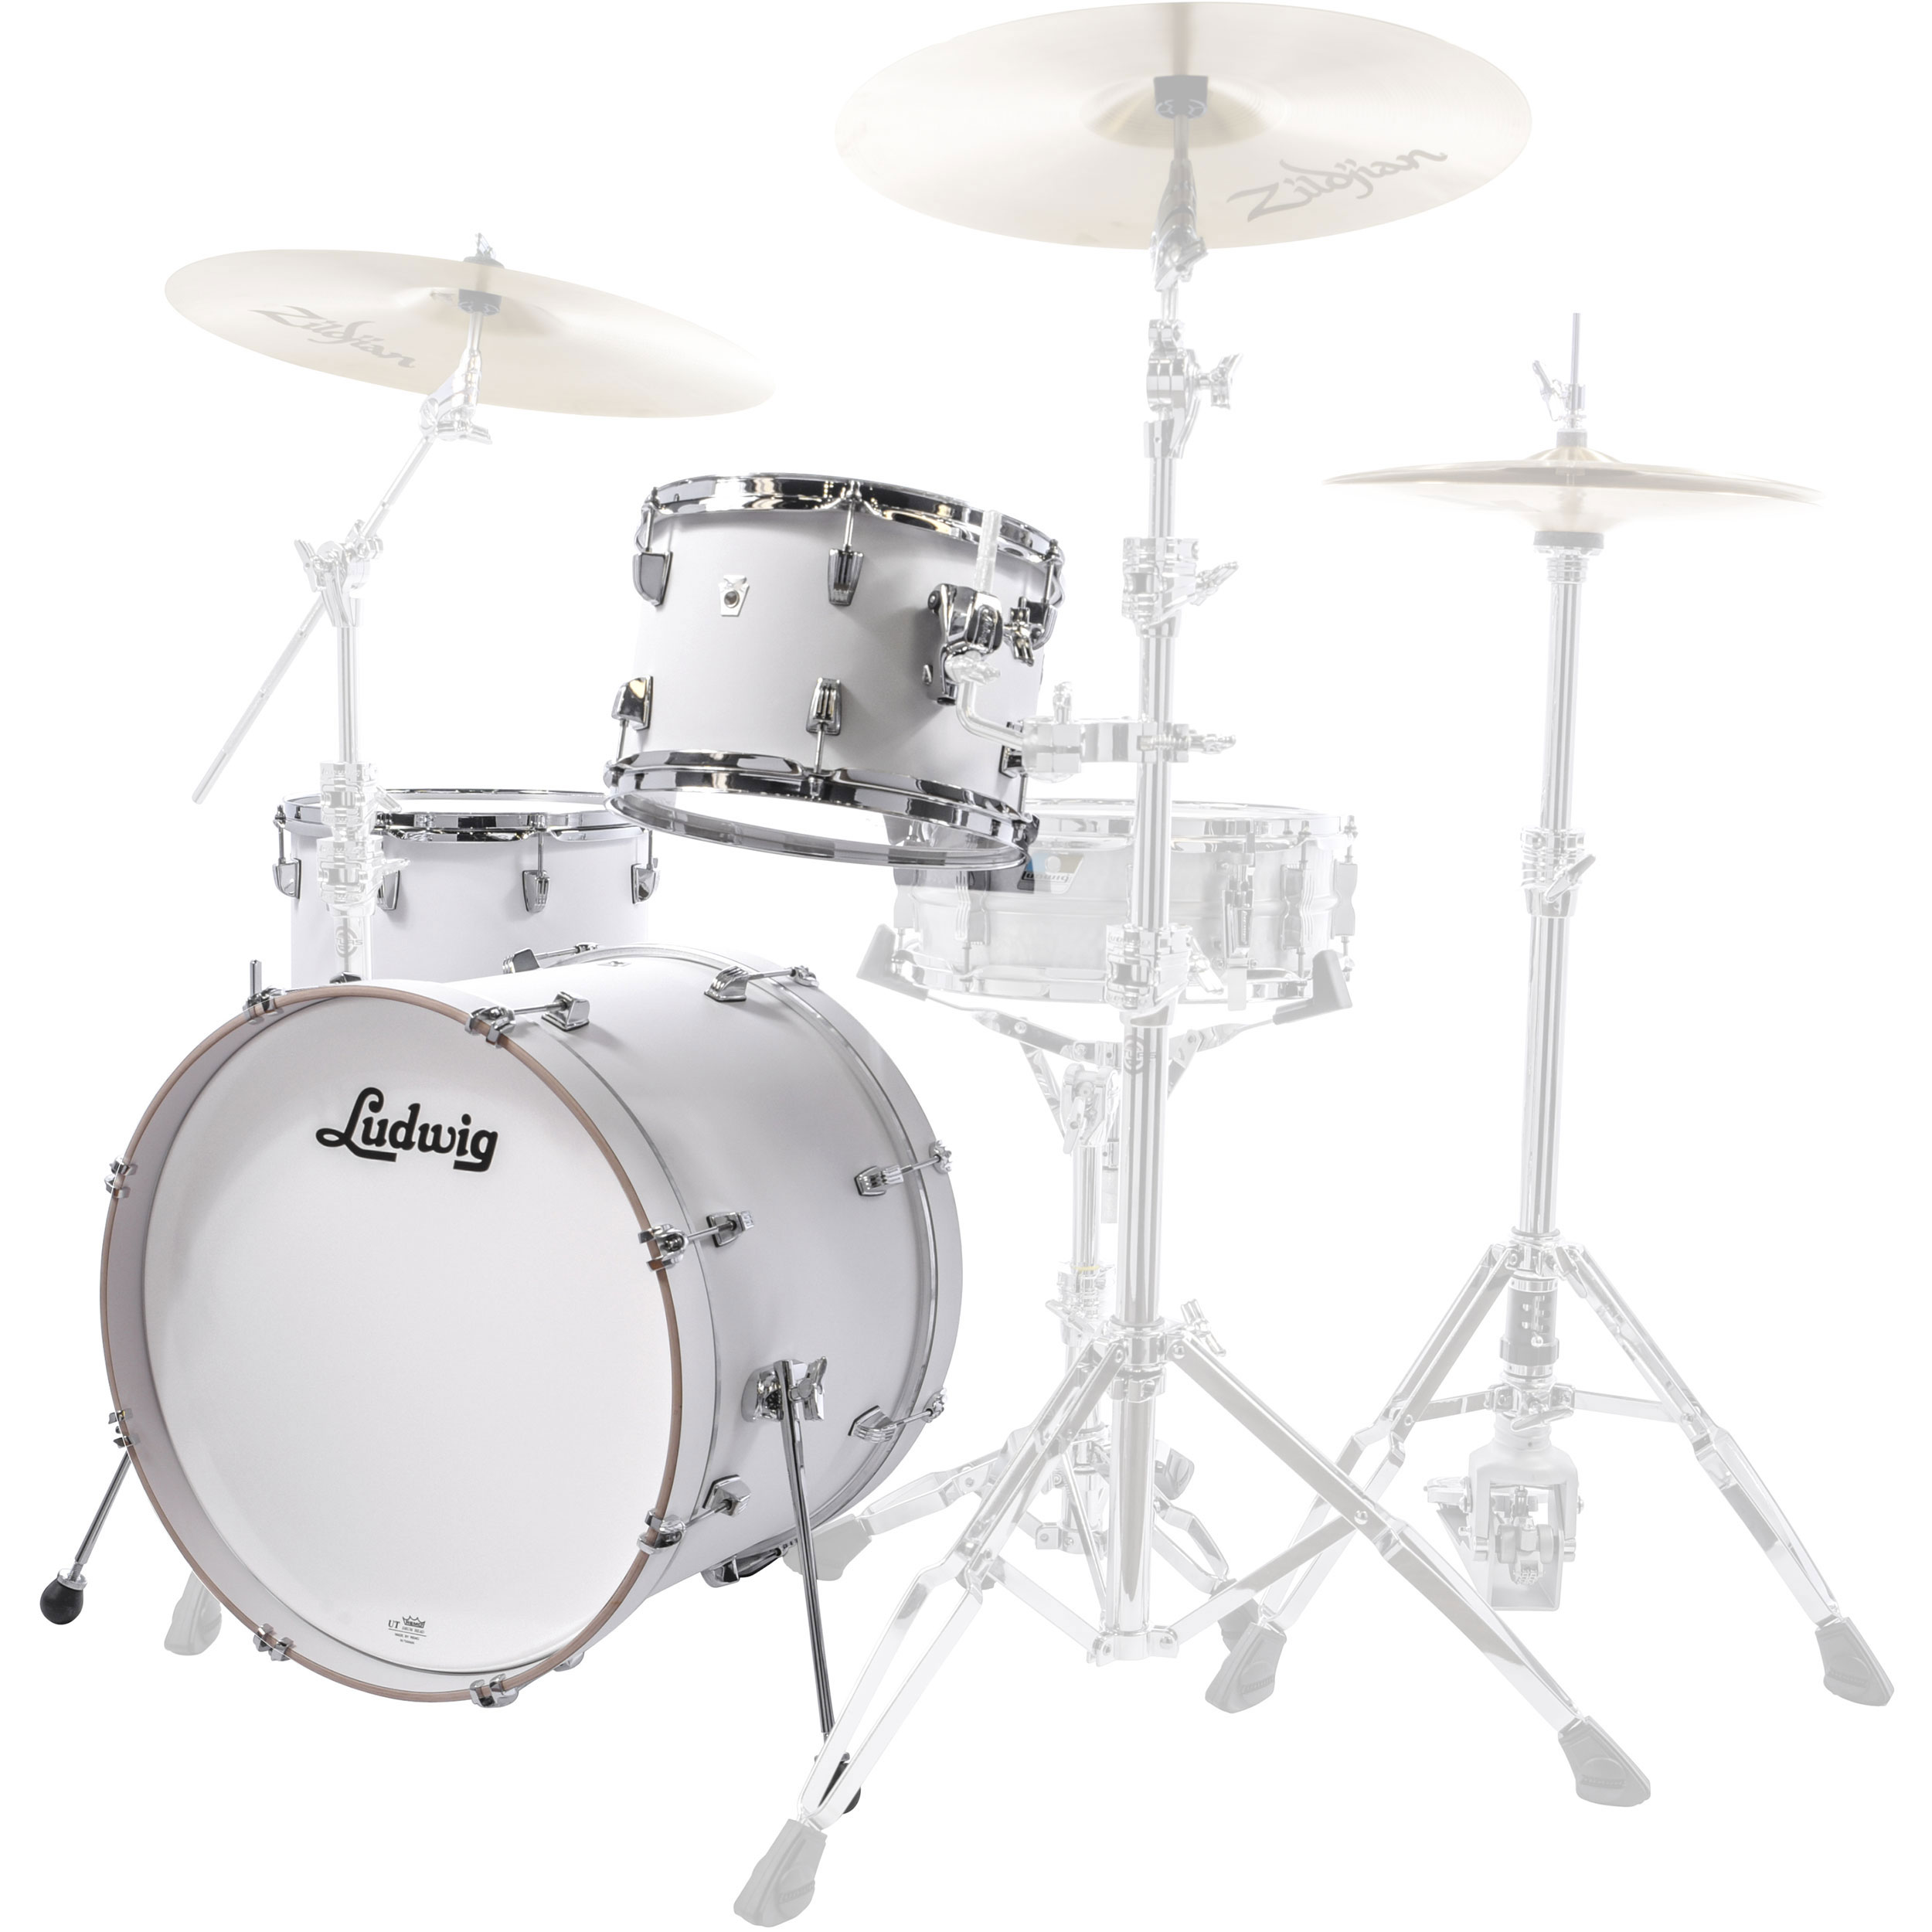 "Ludwig NeuSonic 3-Piece Drum Set Shell Pack (22"" Bass, 12/16"" Toms)"